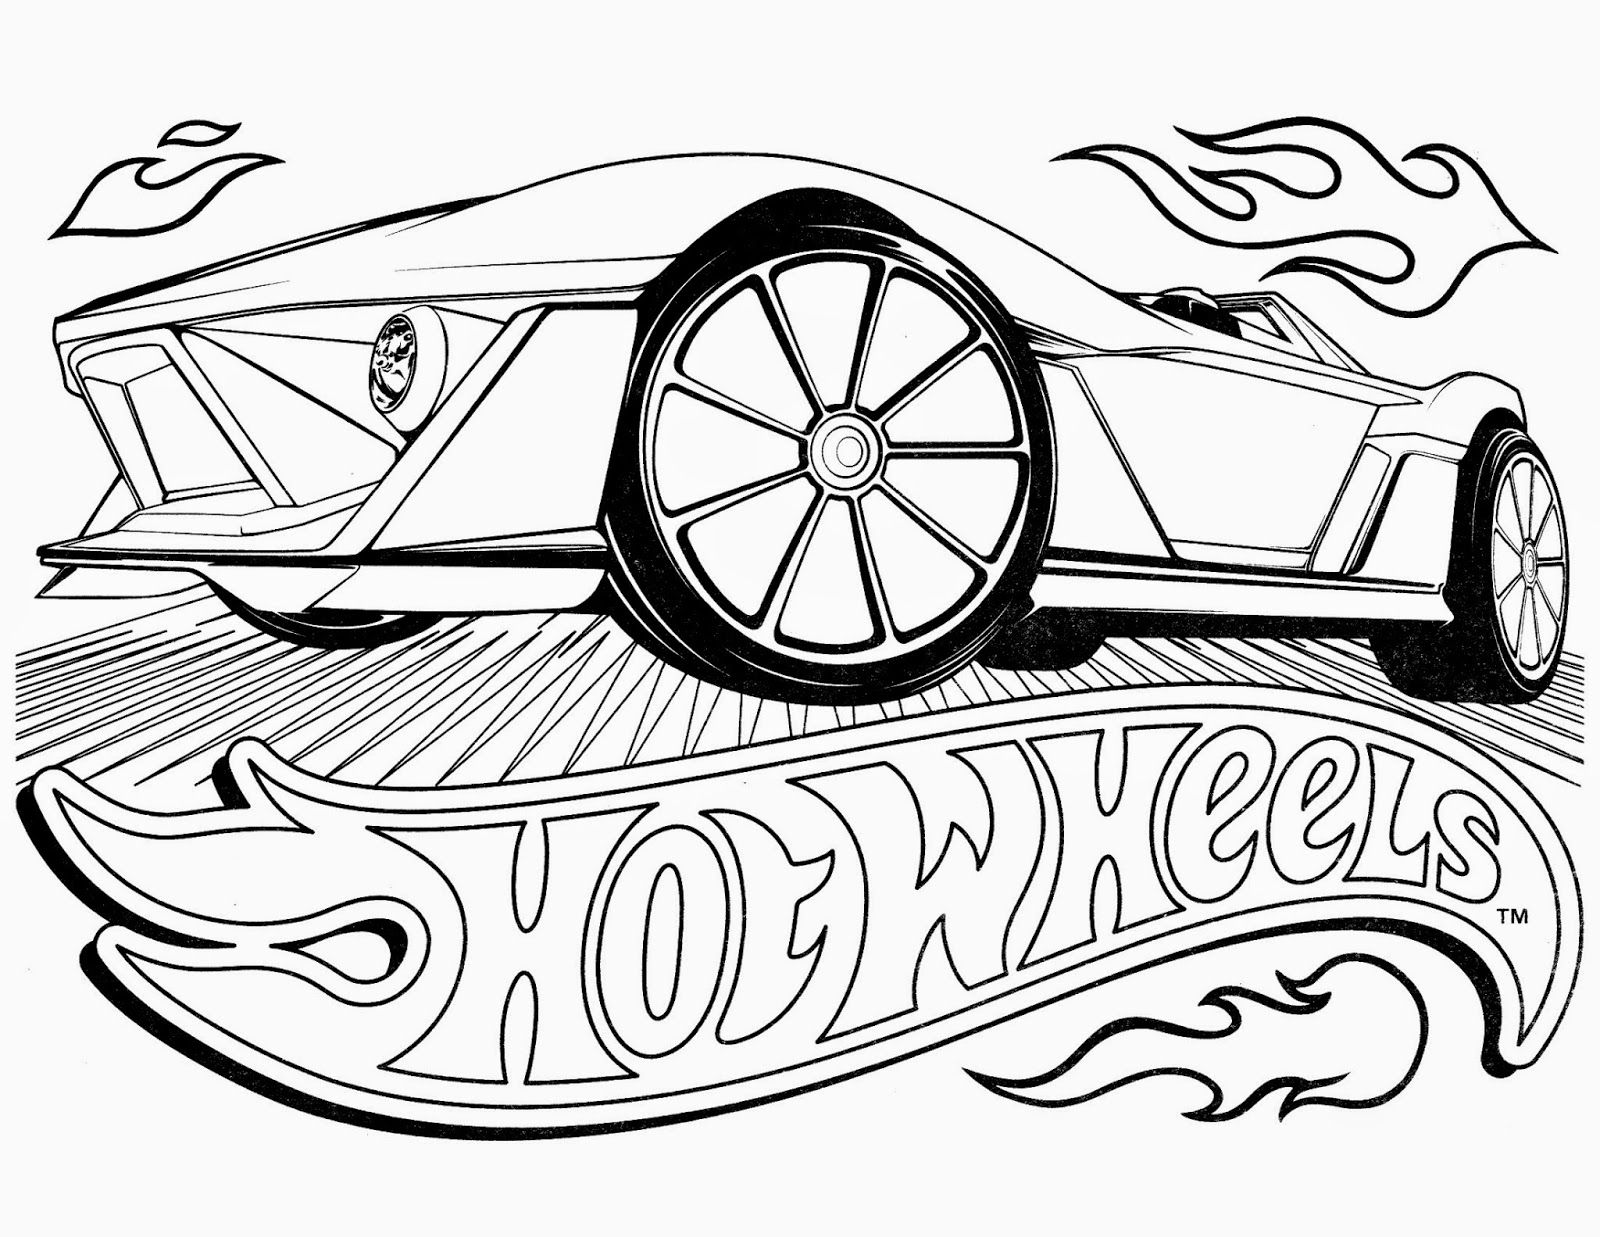 Hot Wheels Coloring Page For Kids Cars Coloring Pages Race Car Coloring Pages Hot Wheels Races